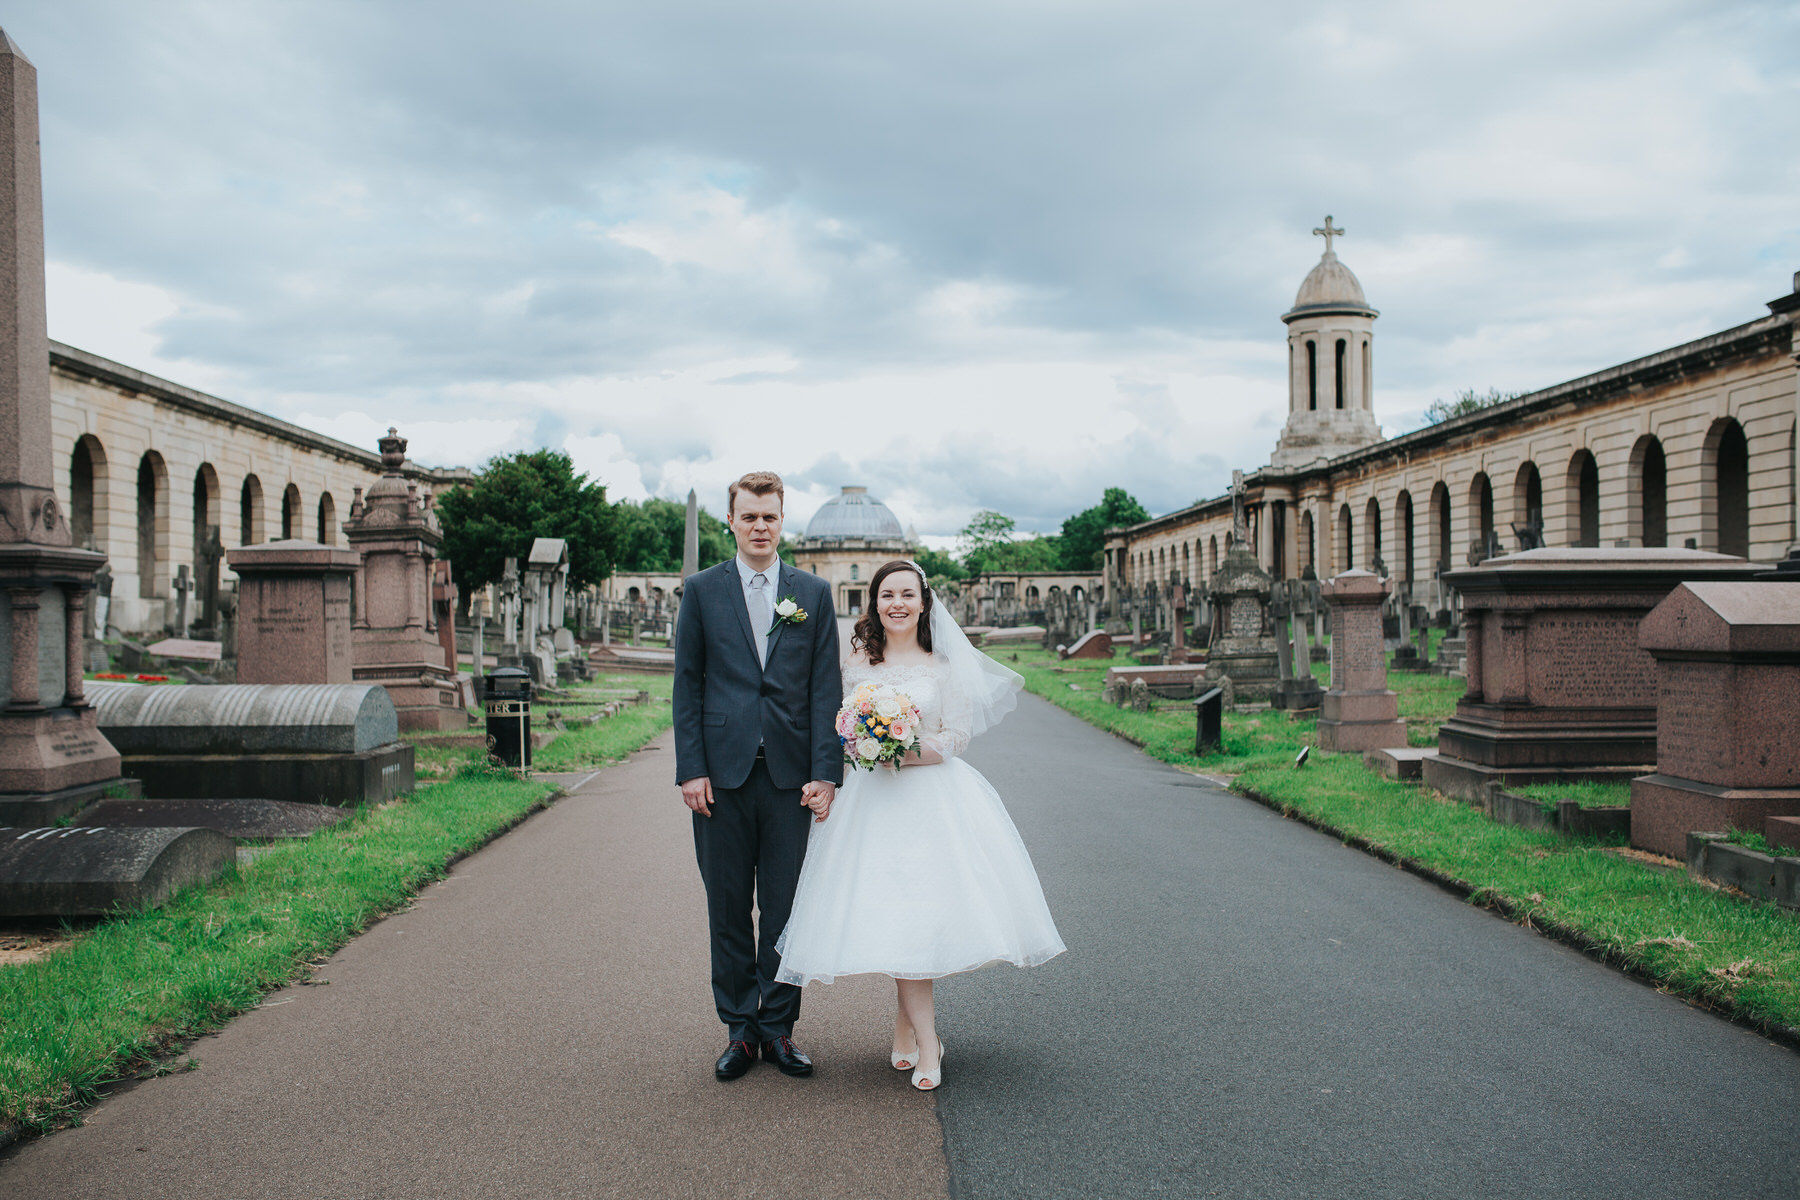 138-groom bride wedding portraits Brompton Cemetery_.jpg